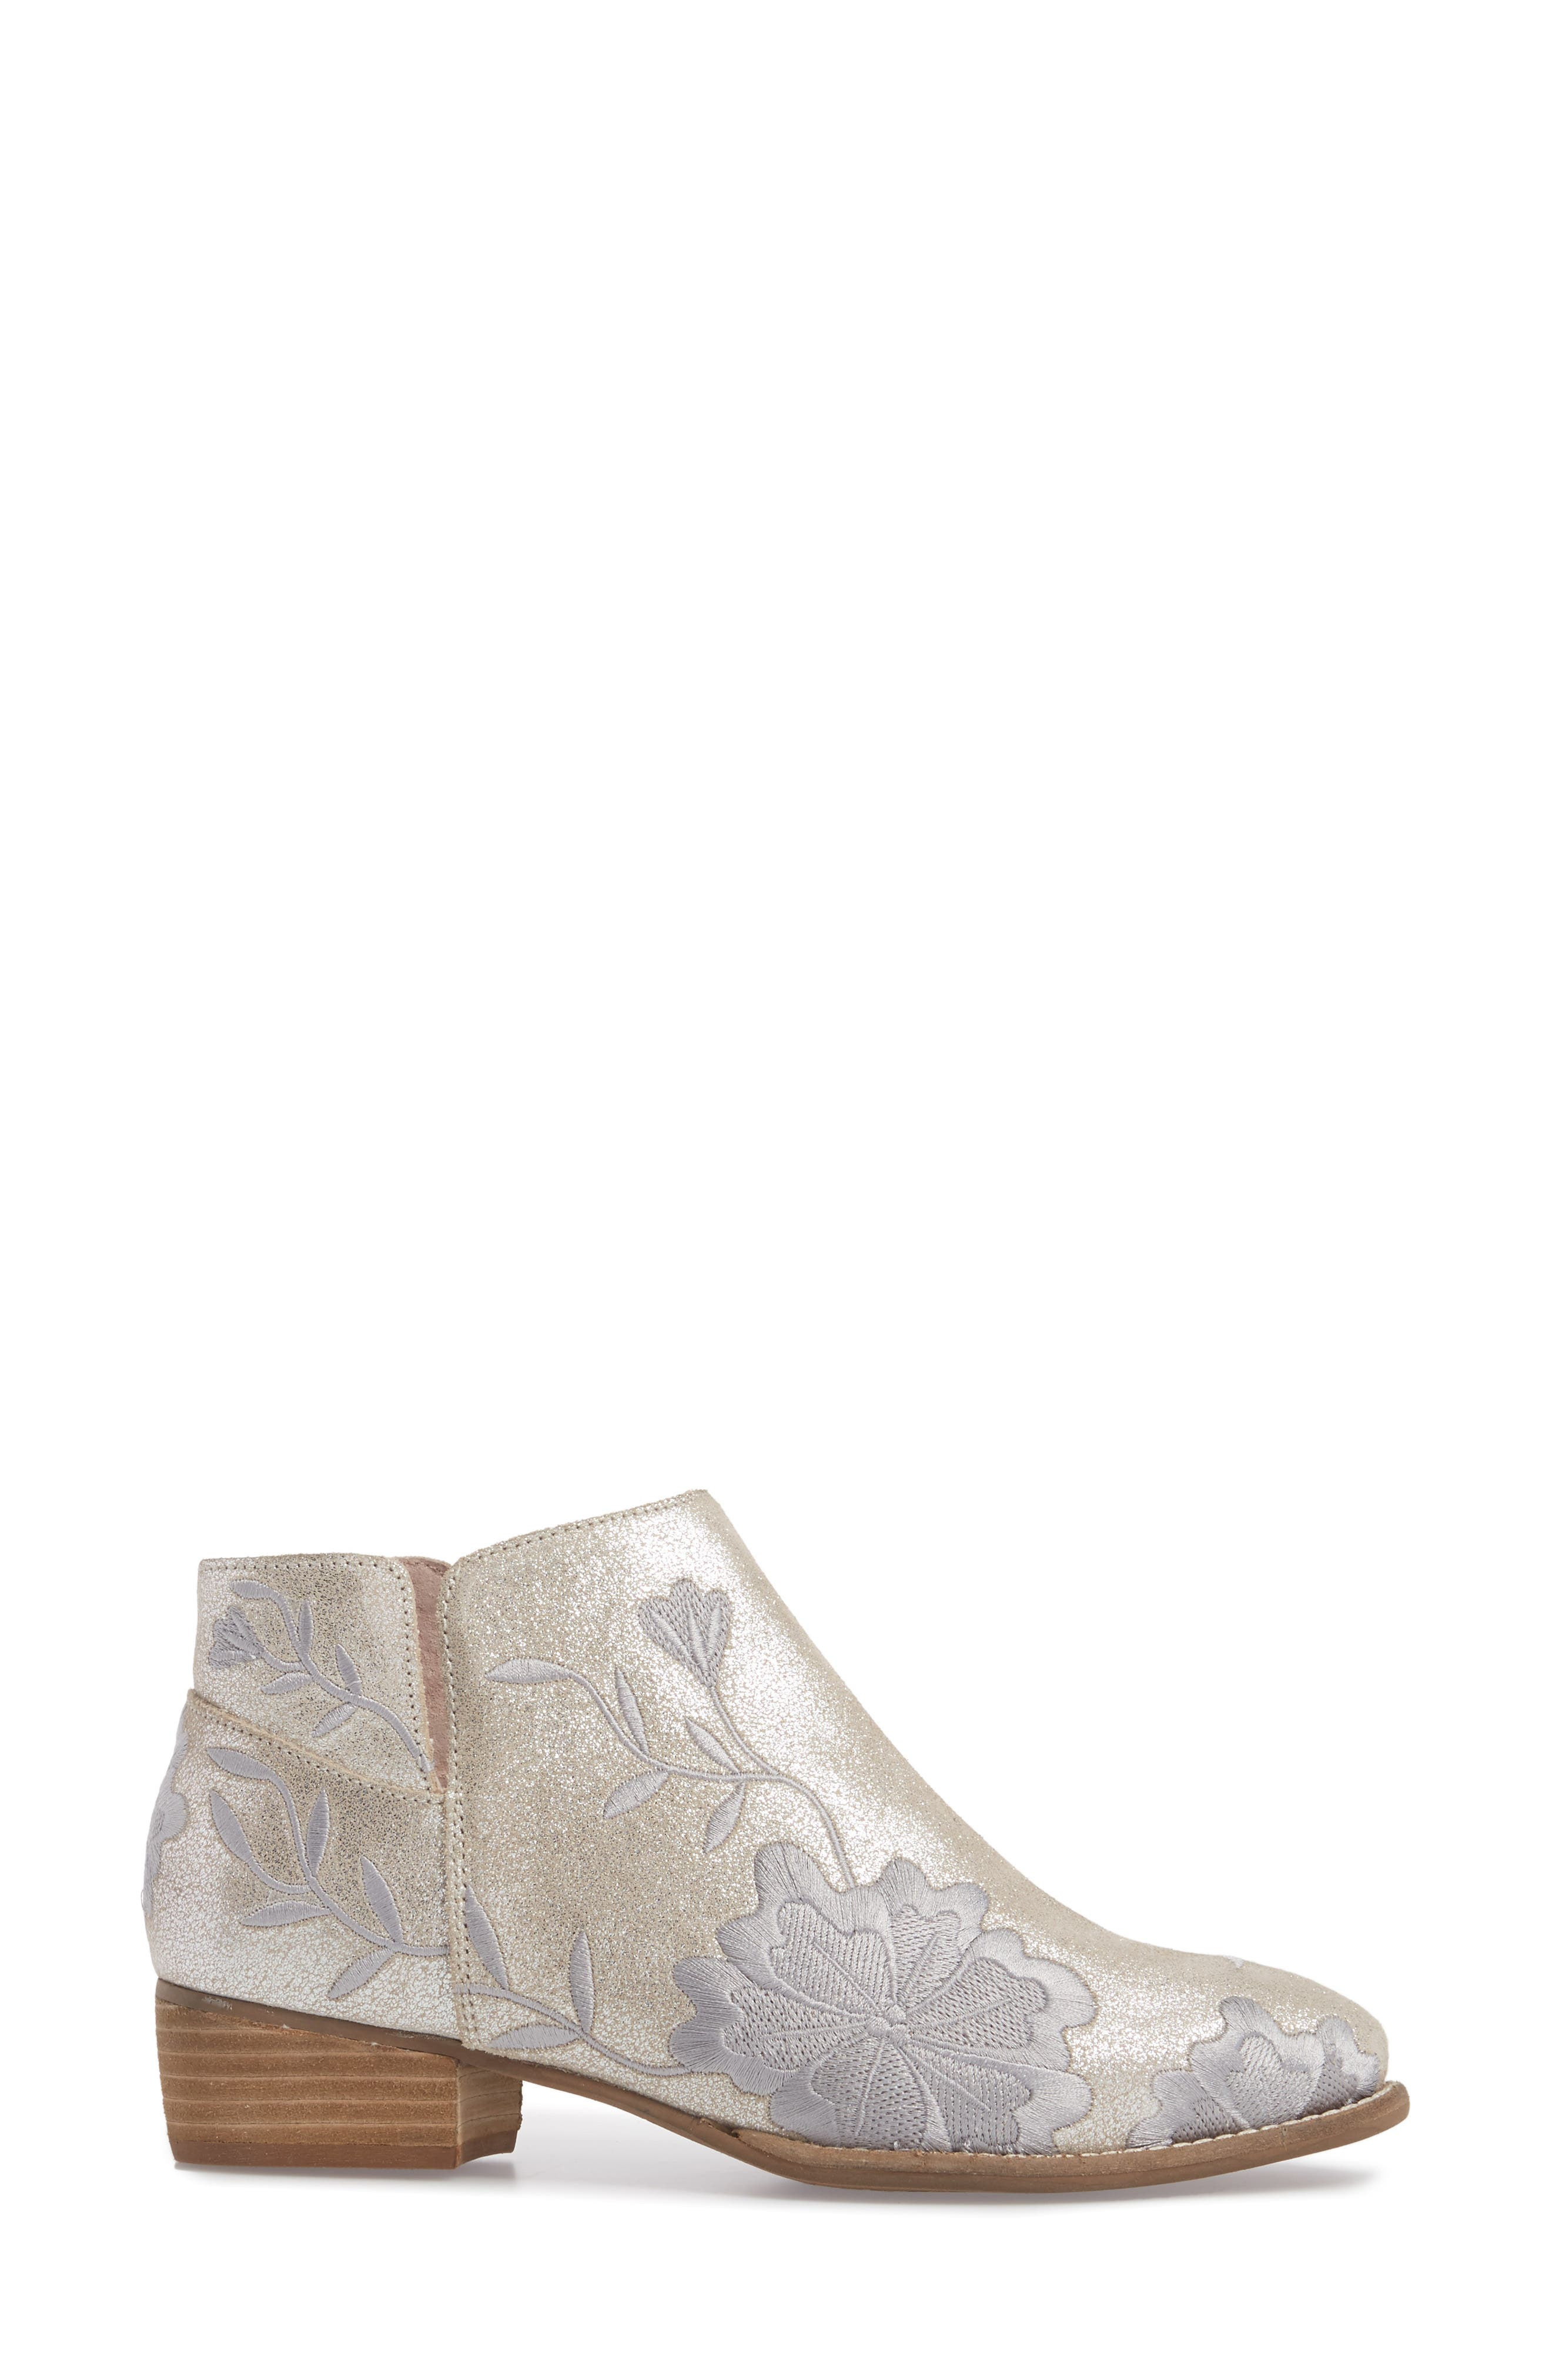 Lantern Embroidered Short Bootie,                             Alternate thumbnail 3, color,                             SILVER SUEDE